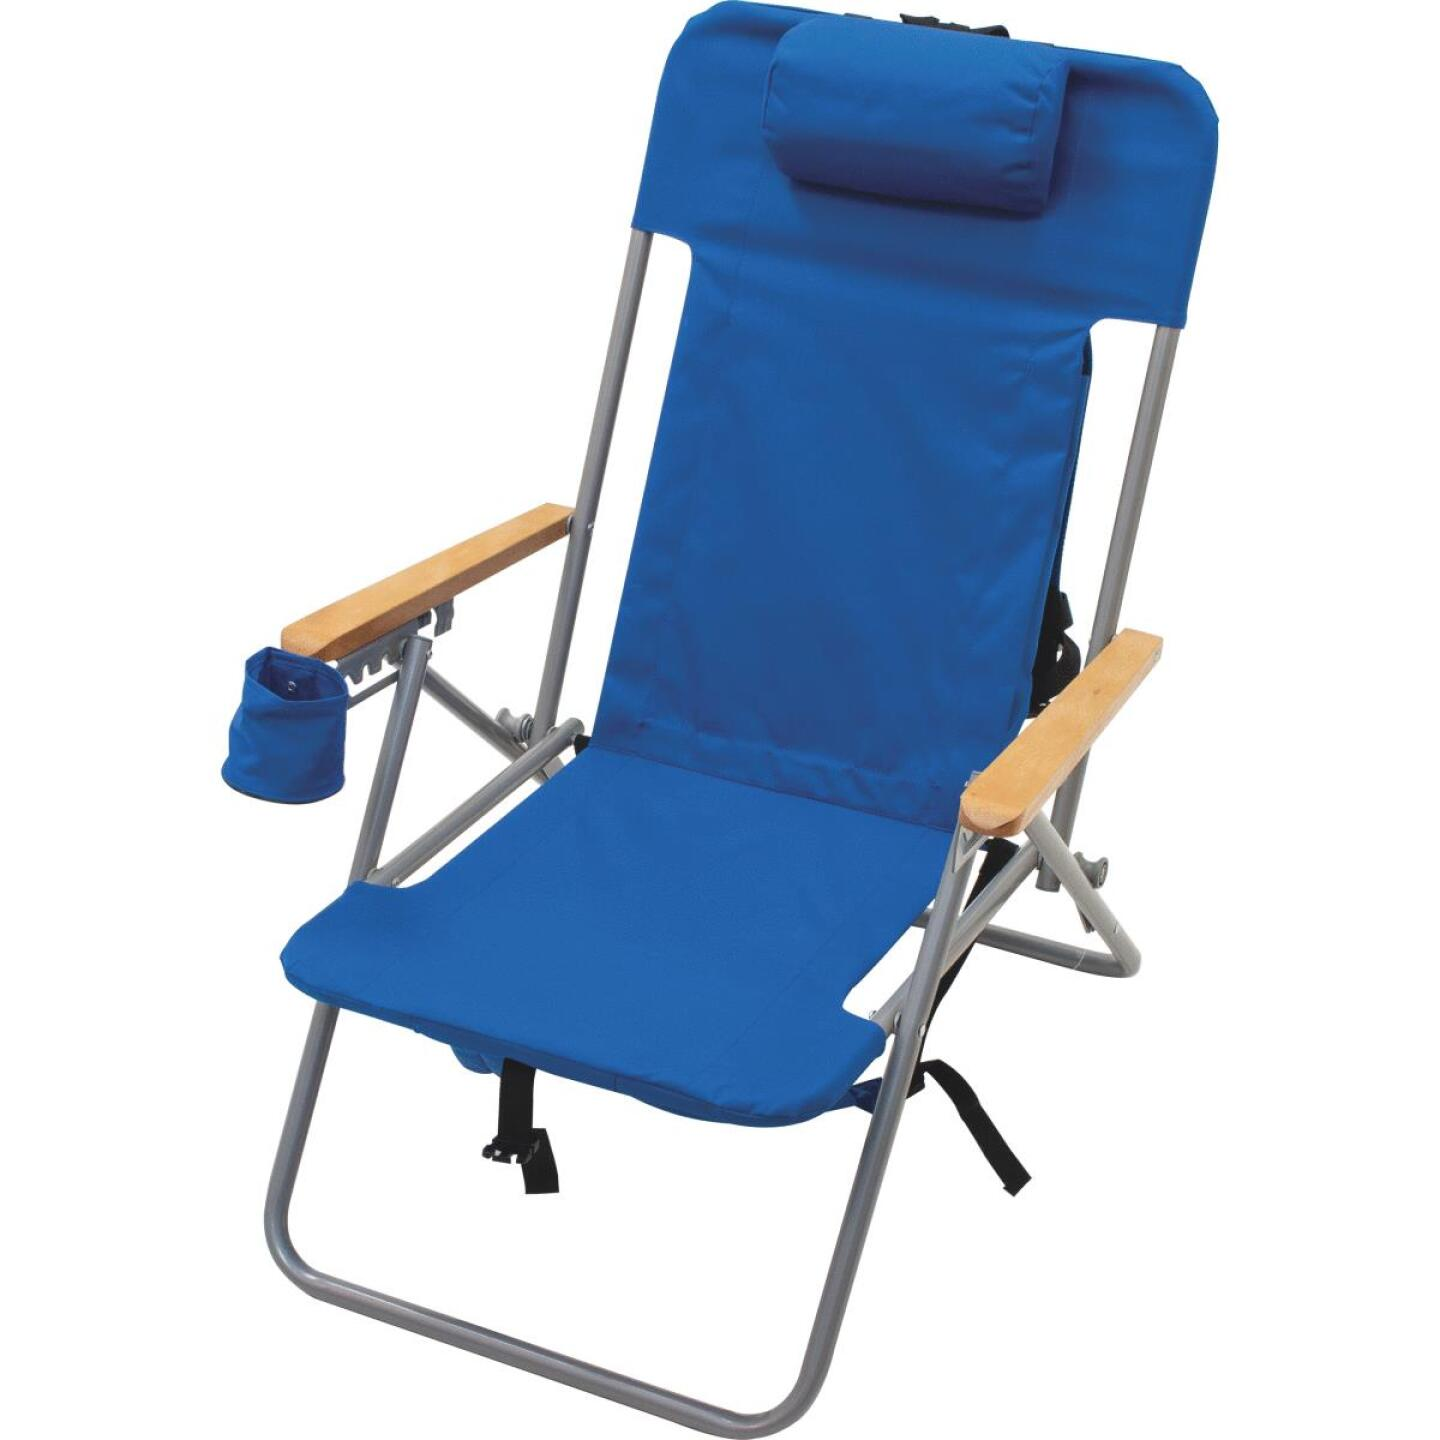 Rio Brands Blue Canvas Backpack Folding Chair Image 6